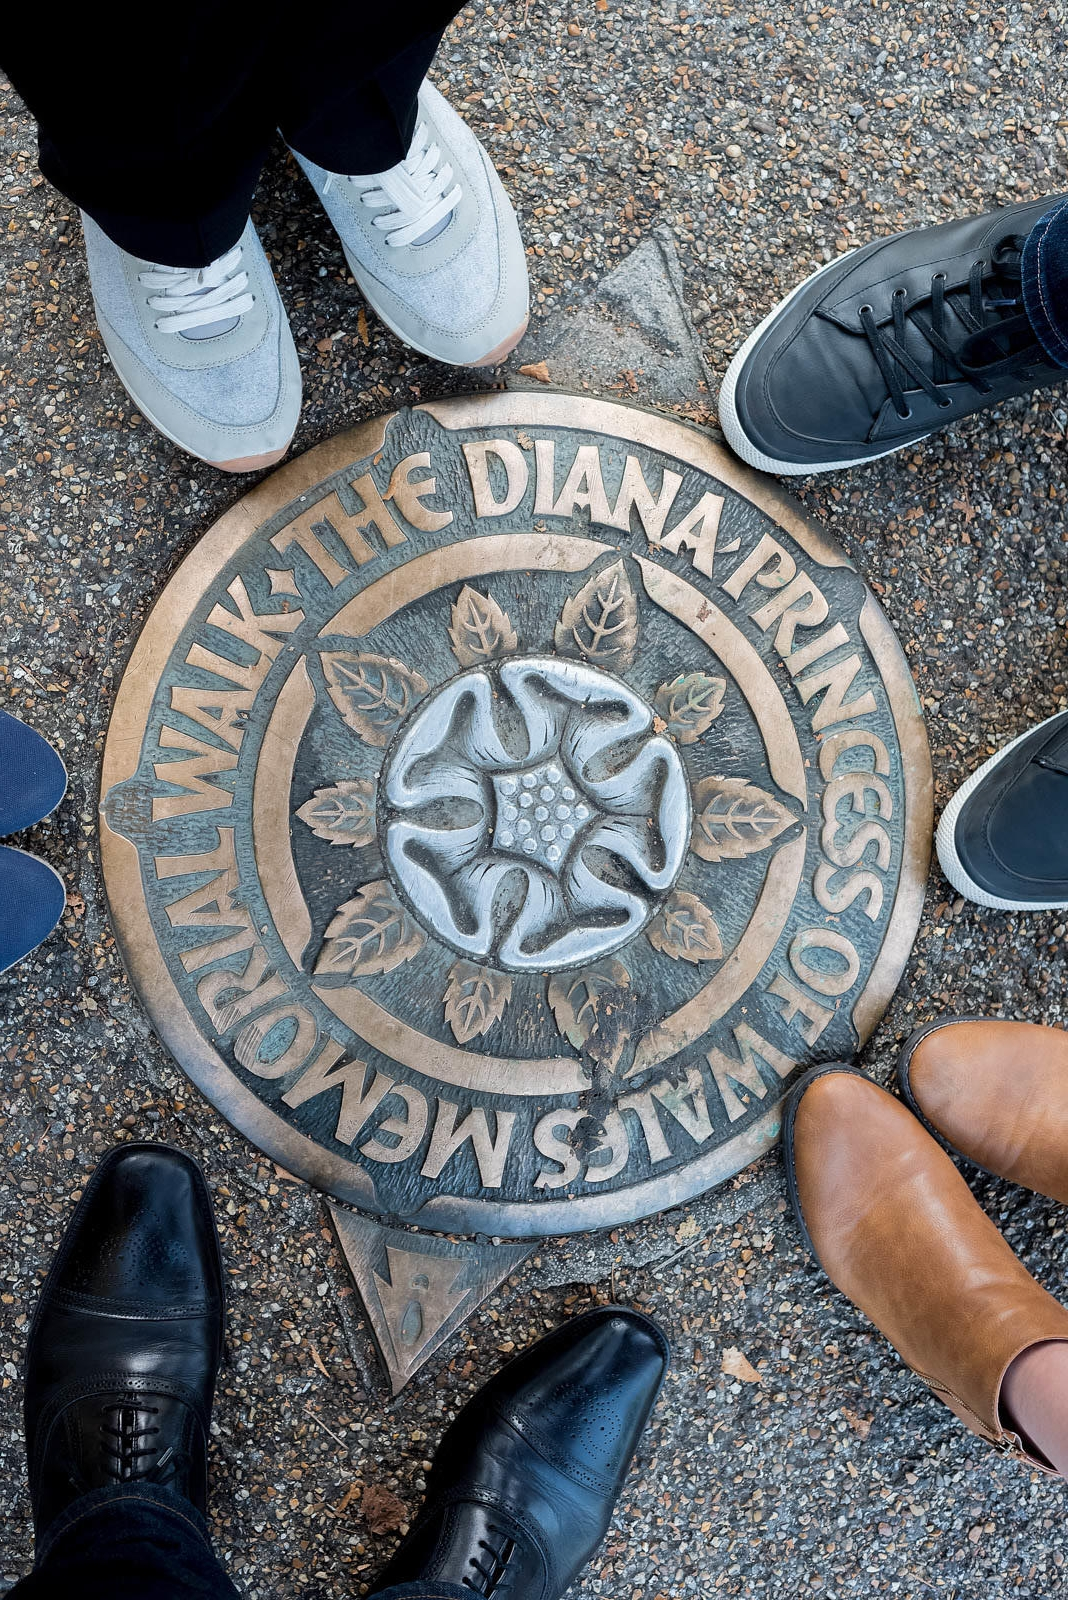 Hyde Park London Diana Princess of Wales Memorial Walk